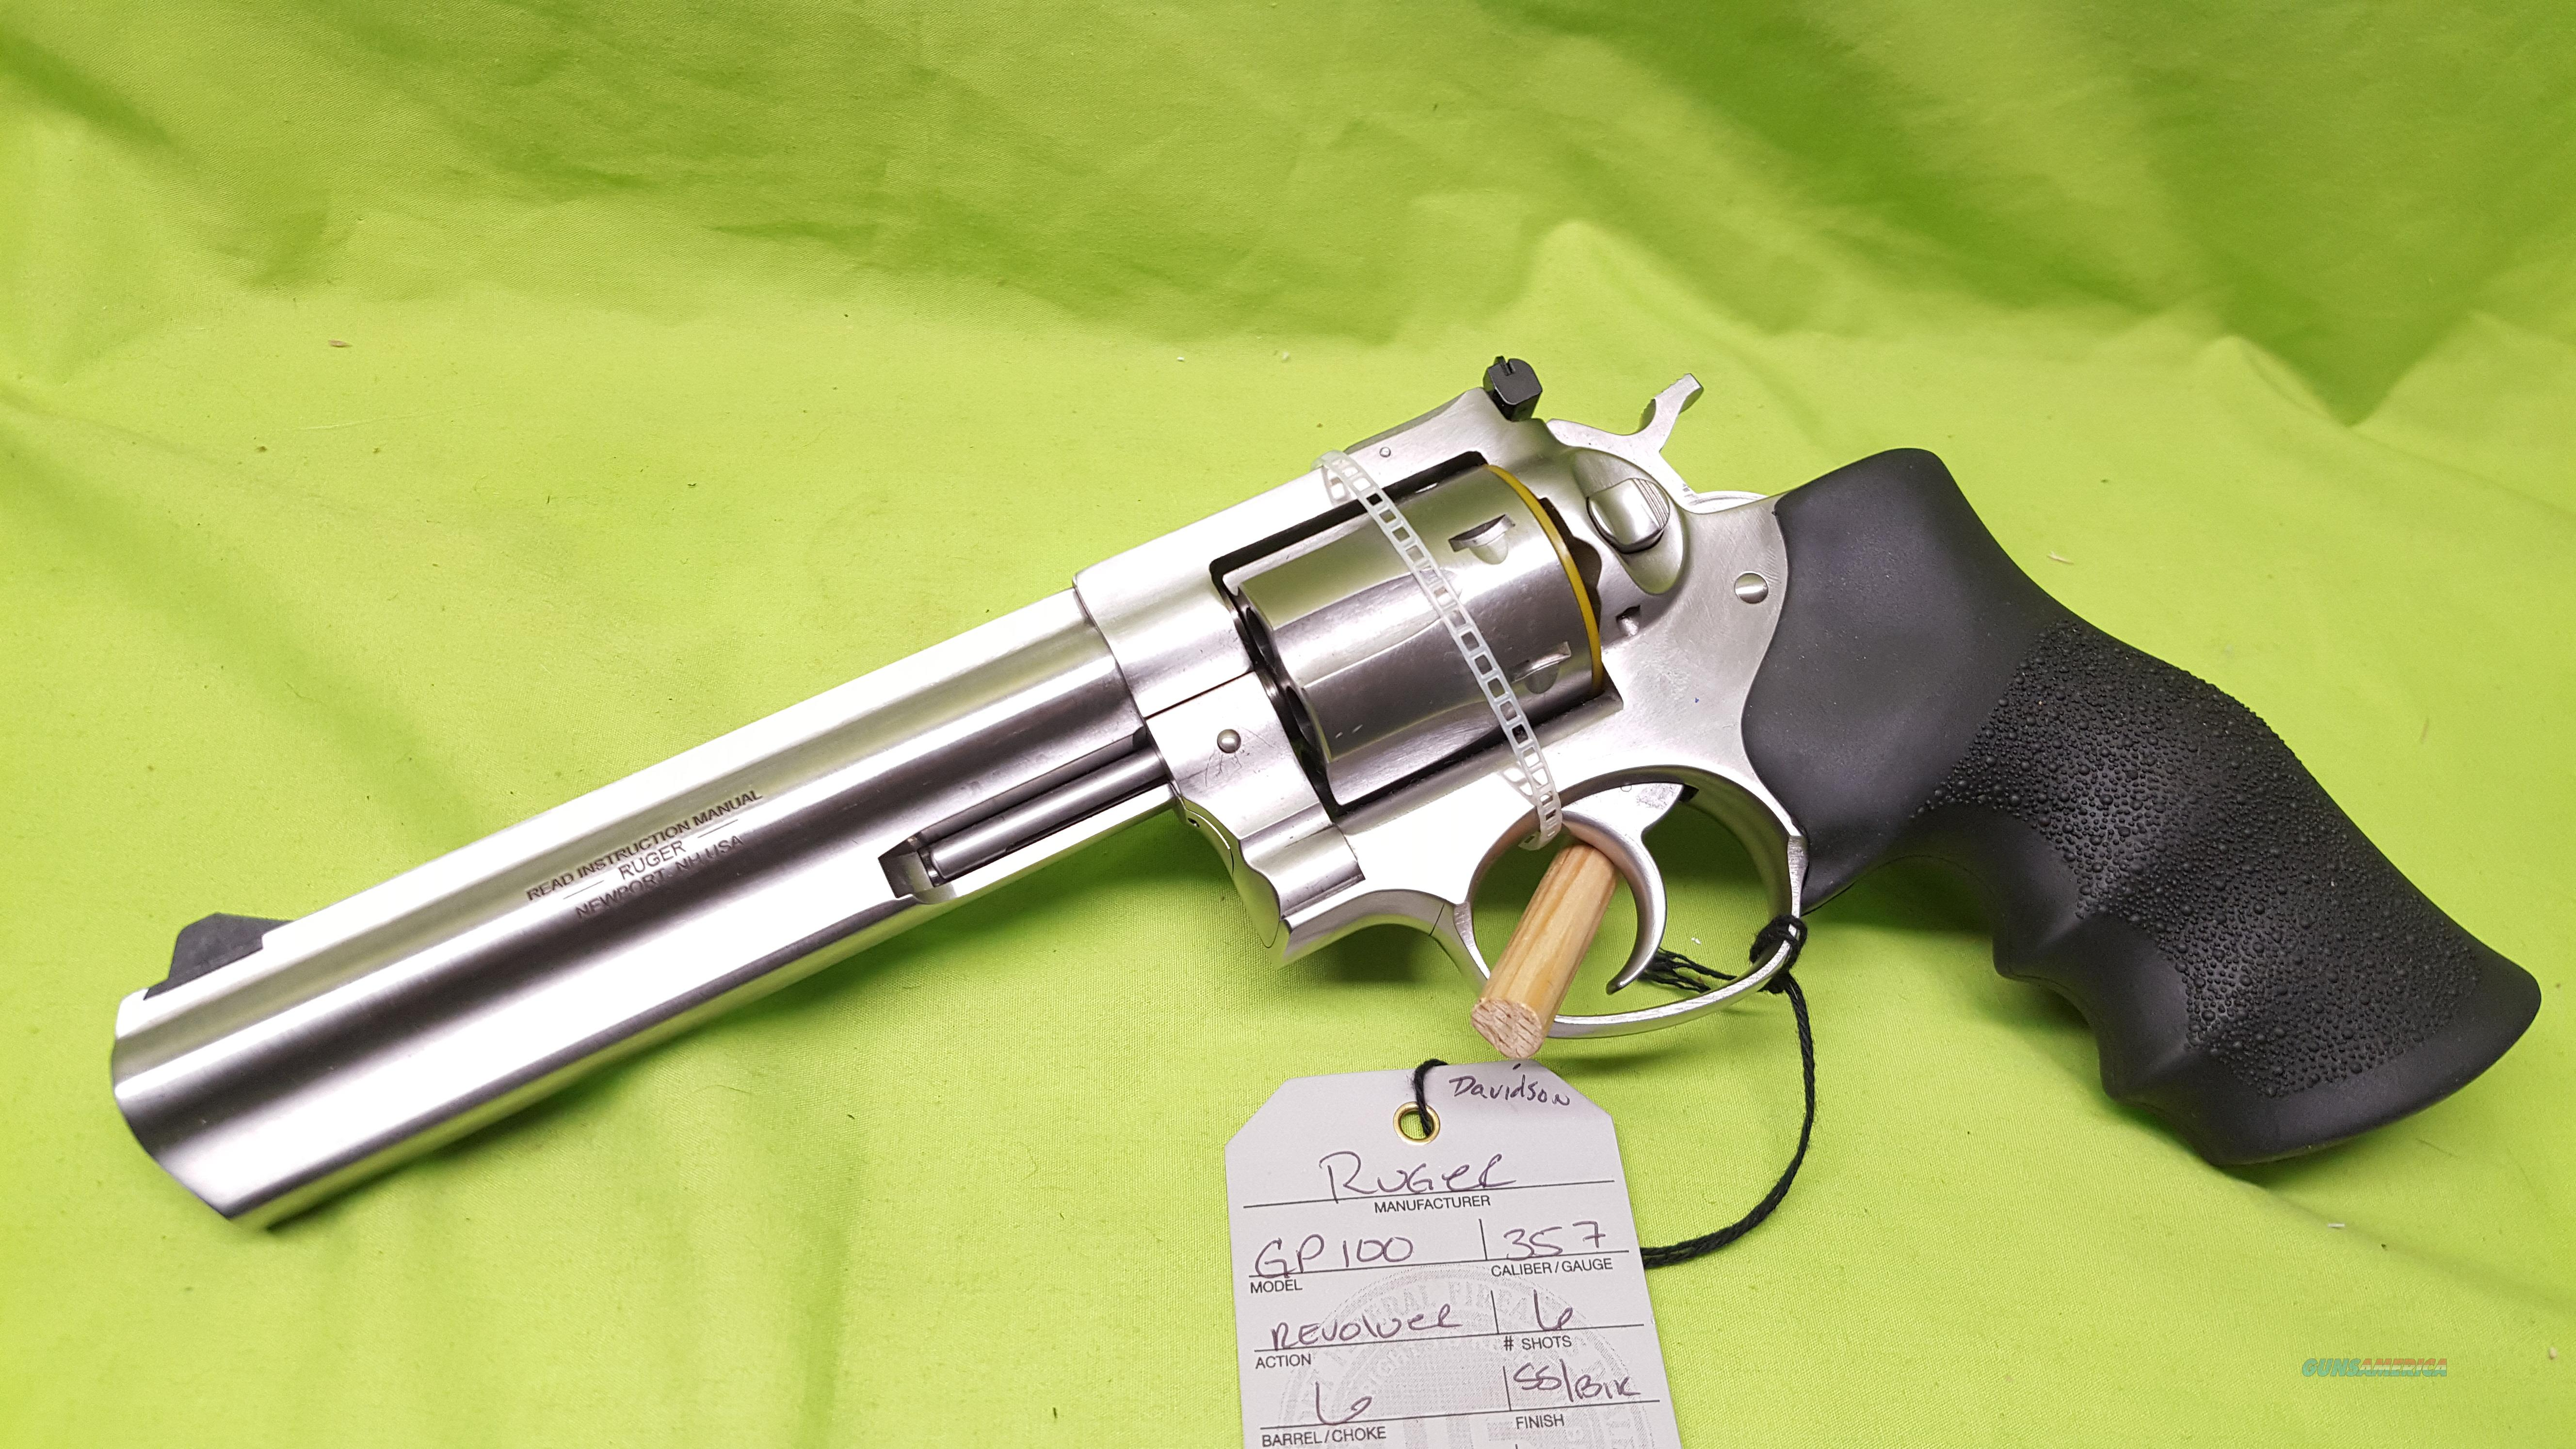 "RUGER GP100 GP 100 357 MAG 6"" REVOLVER STAINLESS  Guns > Pistols > Ruger Double Action Revolver > SP101 Type"